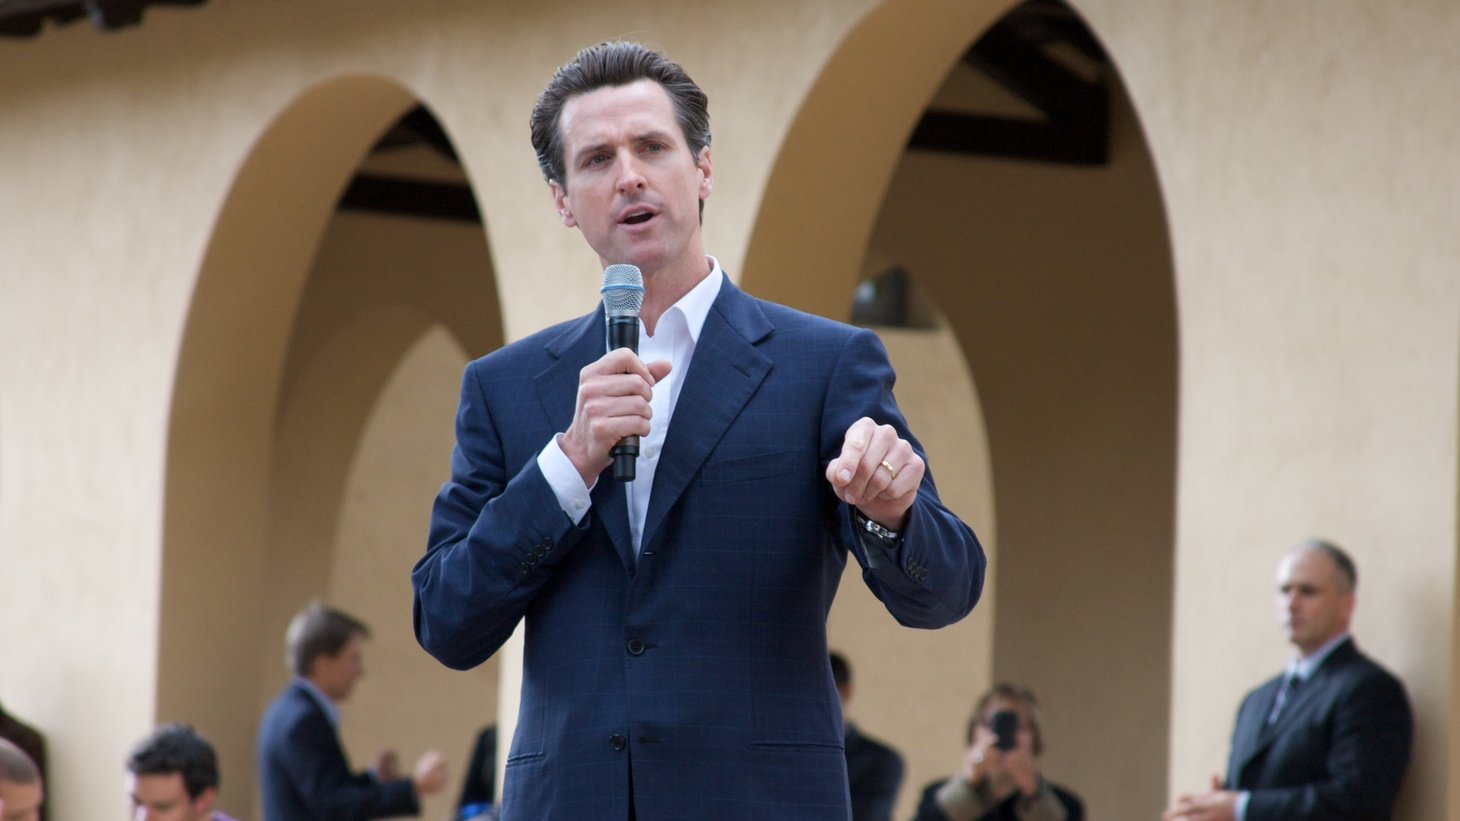 """""""This phase is one where science, where public health, not politics, must be the guide,"""" Governor Gavin Newsom said during his press conference on reopening California's economy."""